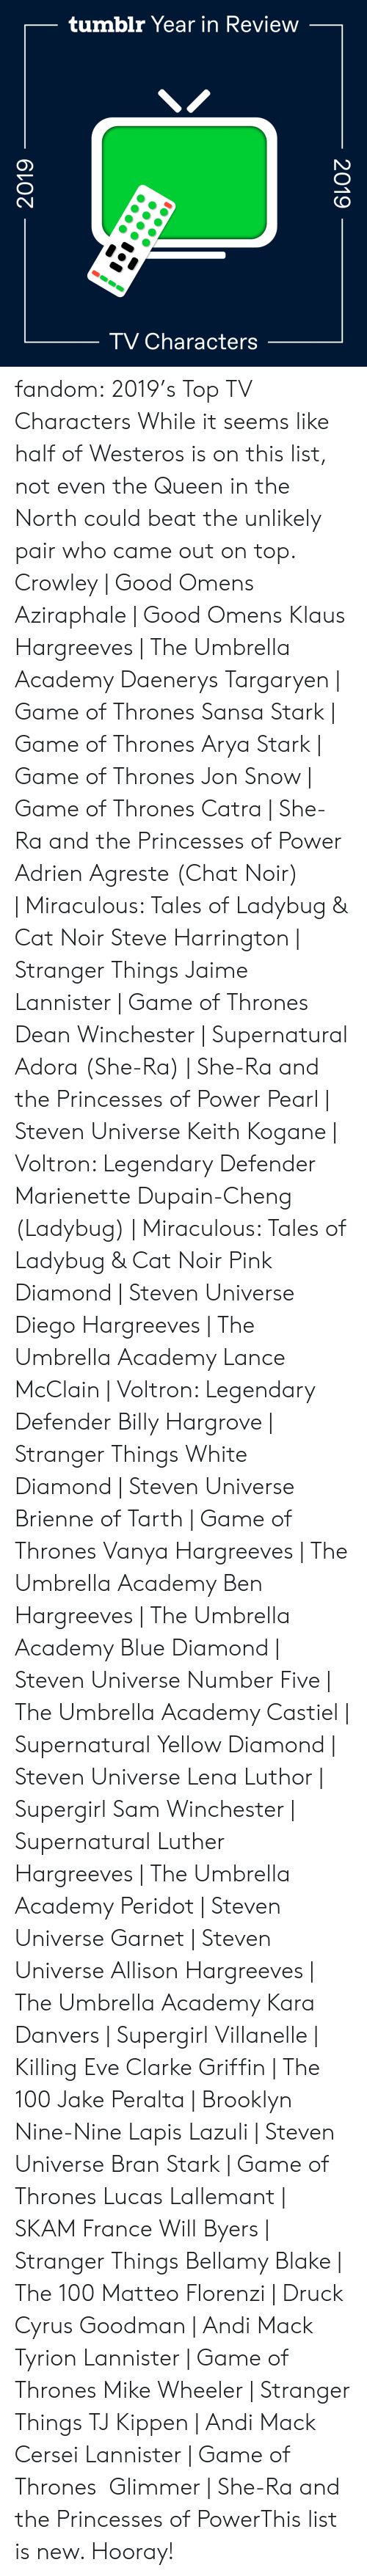 Wheeler: tumblr Year in Review  TV Characters  2019  2019 fandom:  2019's Top TV Characters  While it seems like half of Westeros is on this list, not even the Queen in the North could beat the unlikely pair who came out on top.  Crowley | Good Omens  Aziraphale | Good Omens  Klaus Hargreeves | The Umbrella Academy  Daenerys Targaryen | Game of Thrones  Sansa Stark | Game of Thrones  Arya Stark | Game of Thrones  Jon Snow | Game of Thrones  Catra | She-Ra and the Princesses of Power  Adrien Agreste (Chat Noir) | Miraculous: Tales of Ladybug & Cat Noir  Steve Harrington | Stranger Things  Jaime Lannister | Game of Thrones  Dean Winchester | Supernatural  Adora (She-Ra) | She-Ra and the Princesses of Power  Pearl | Steven Universe  Keith Kogane | Voltron: Legendary Defender  Marienette Dupain-Cheng (Ladybug) | Miraculous: Tales of Ladybug & Cat Noir  Pink Diamond | Steven Universe  Diego Hargreeves | The Umbrella Academy  Lance McClain | Voltron: Legendary Defender  Billy Hargrove | Stranger Things  White Diamond | Steven Universe  Brienne of Tarth | Game of Thrones  Vanya Hargreeves | The Umbrella Academy  Ben Hargreeves | The Umbrella Academy  Blue Diamond | Steven Universe  Number Five | The Umbrella Academy  Castiel | Supernatural  Yellow Diamond | Steven Universe  Lena Luthor | Supergirl  Sam Winchester | Supernatural  Luther Hargreeves | The Umbrella Academy  Peridot | Steven Universe  Garnet | Steven Universe  Allison Hargreeves | The Umbrella Academy  Kara Danvers | Supergirl  Villanelle | Killing Eve  Clarke Griffin | The 100  Jake Peralta | Brooklyn Nine-Nine  Lapis Lazuli | Steven Universe  Bran Stark | Game of Thrones  Lucas Lallemant | SKAM France  Will Byers | Stranger Things  Bellamy Blake | The 100  Matteo Florenzi | Druck  Cyrus Goodman | Andi Mack  Tyrion Lannister | Game of Thrones  Mike Wheeler | Stranger Things  TJ Kippen | Andi Mack  Cersei Lannister | Game of Thrones  Glimmer | She-Ra and the Princesses of PowerThis list is new. Hooray!